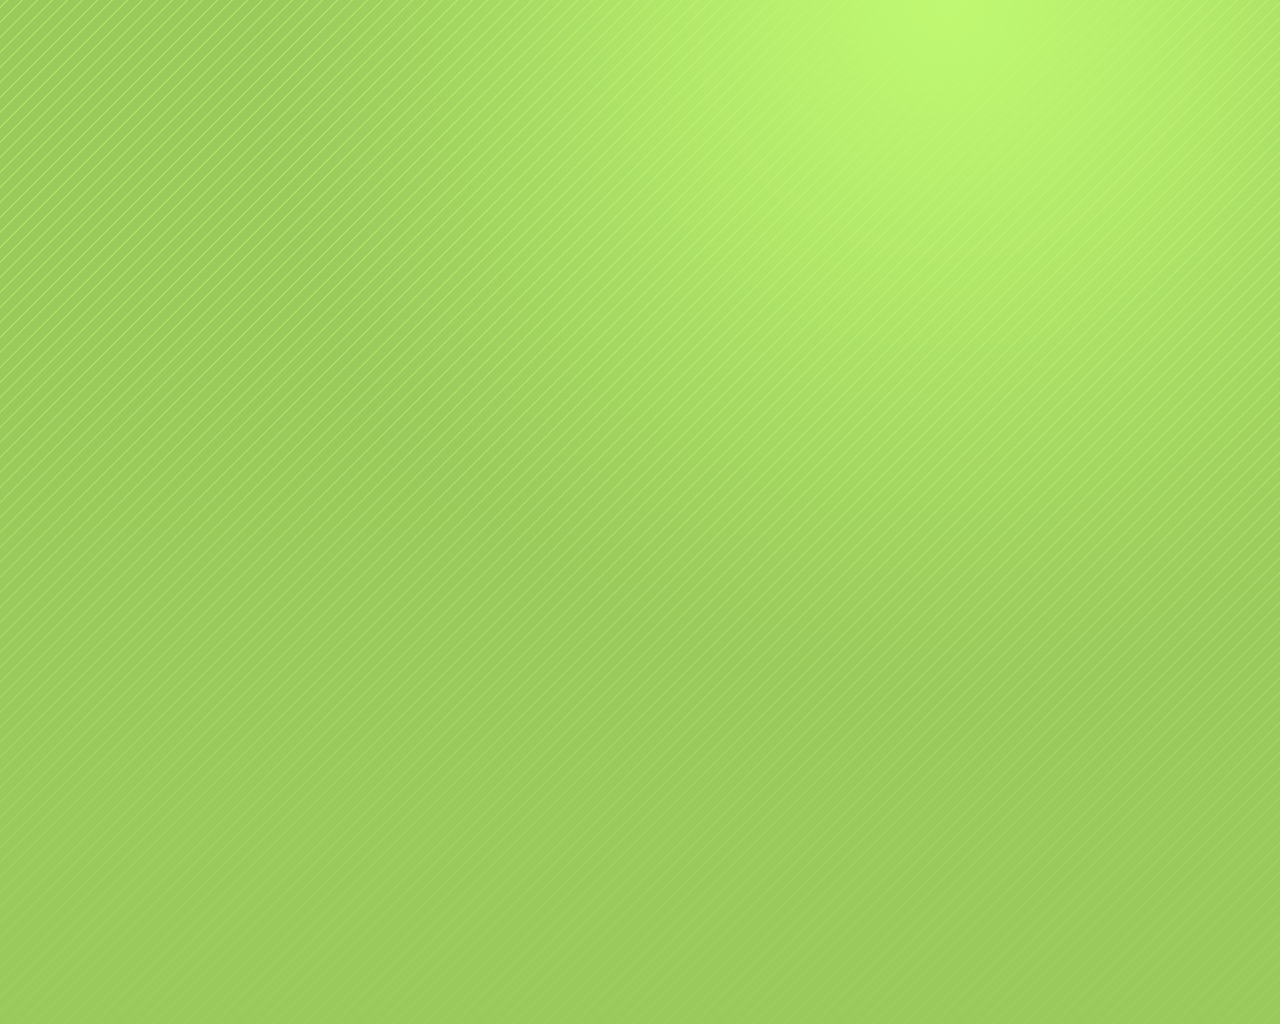 light green wallpaper designs - photo #18